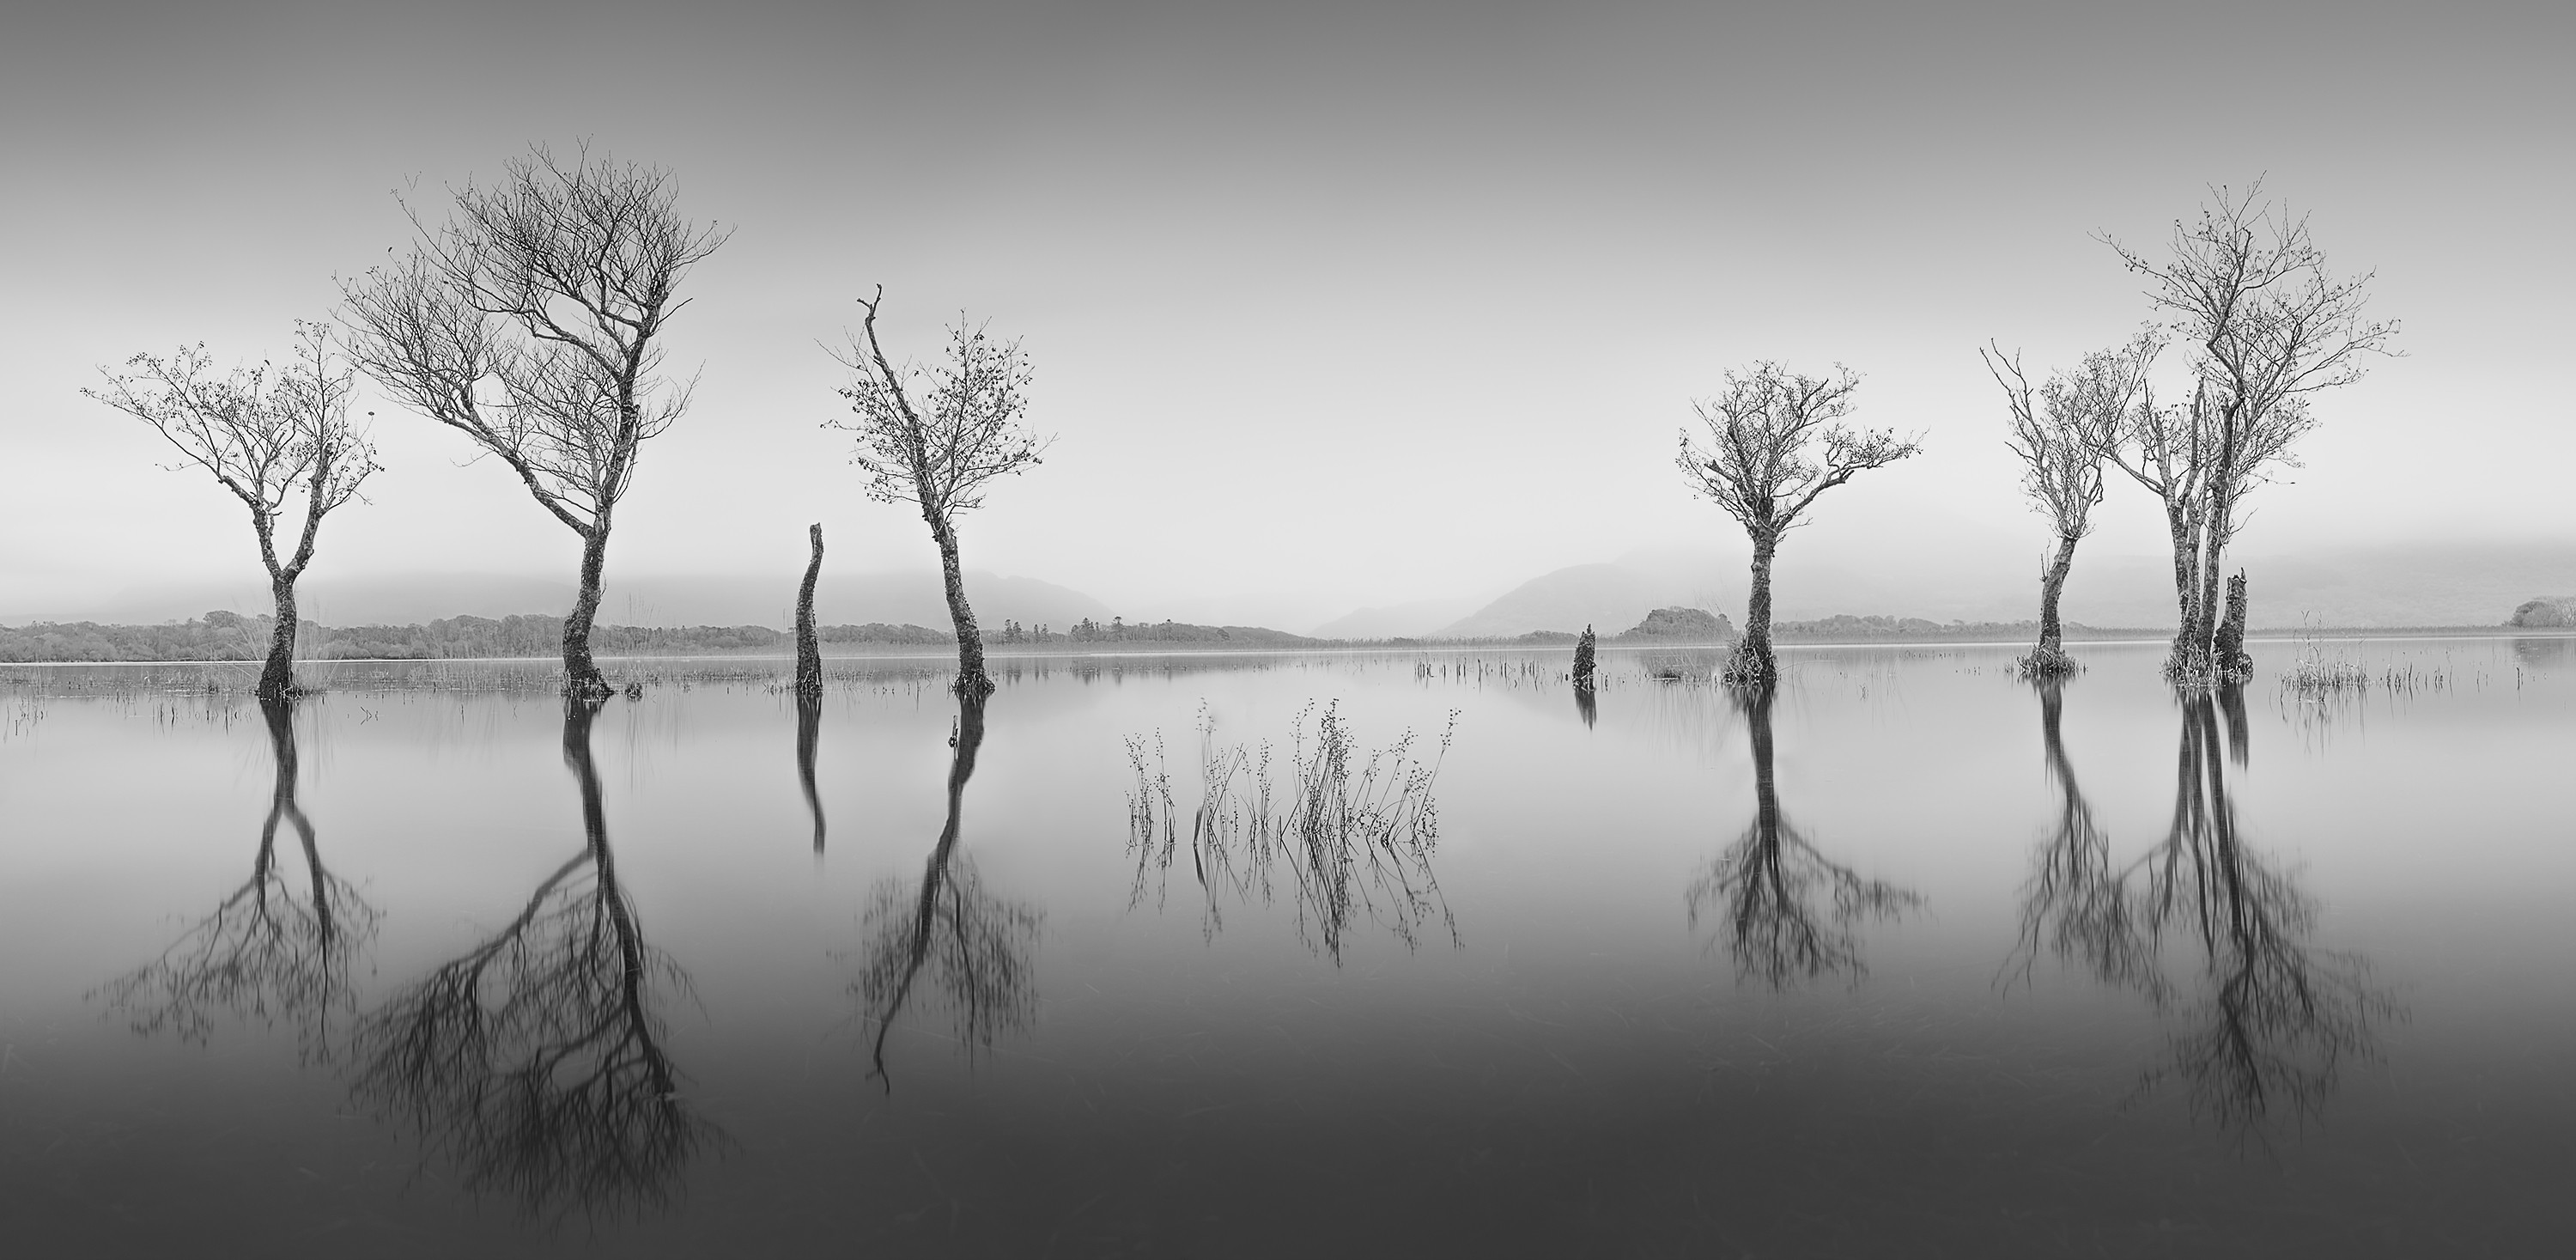 A still, white body of water landscape dotted with black, barren trees mirrored perfectly in the reflection below